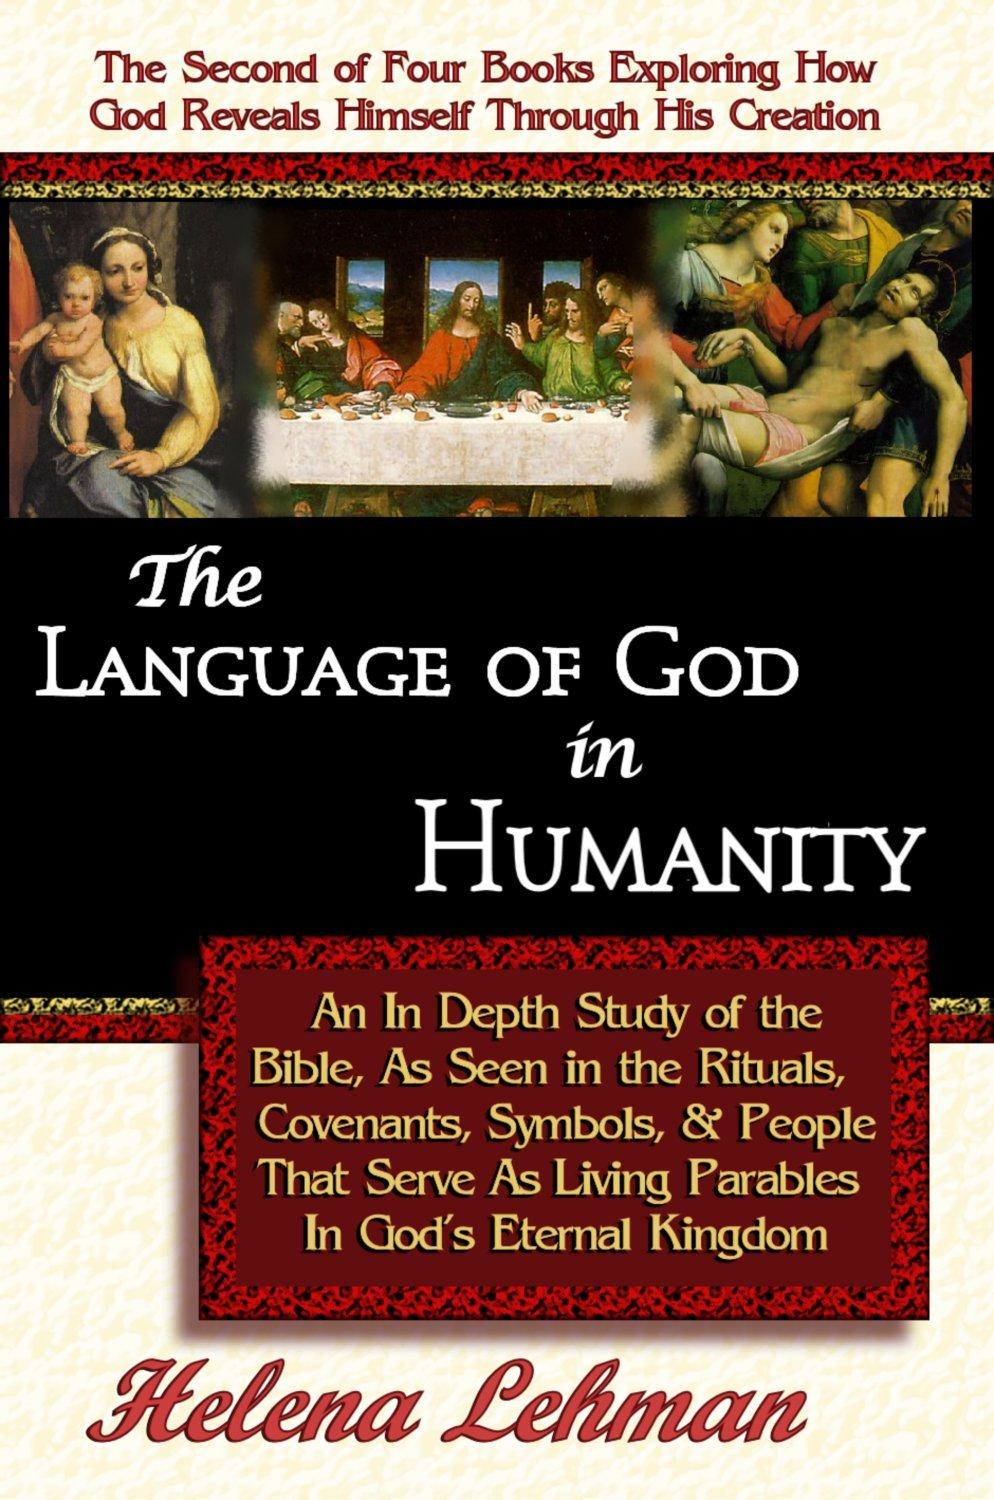 The Language of God in Humanity, An In Depth Study of the Bible as Seen in the Rituals, Covenants, Symbols, and People that Serve as Living Parables I